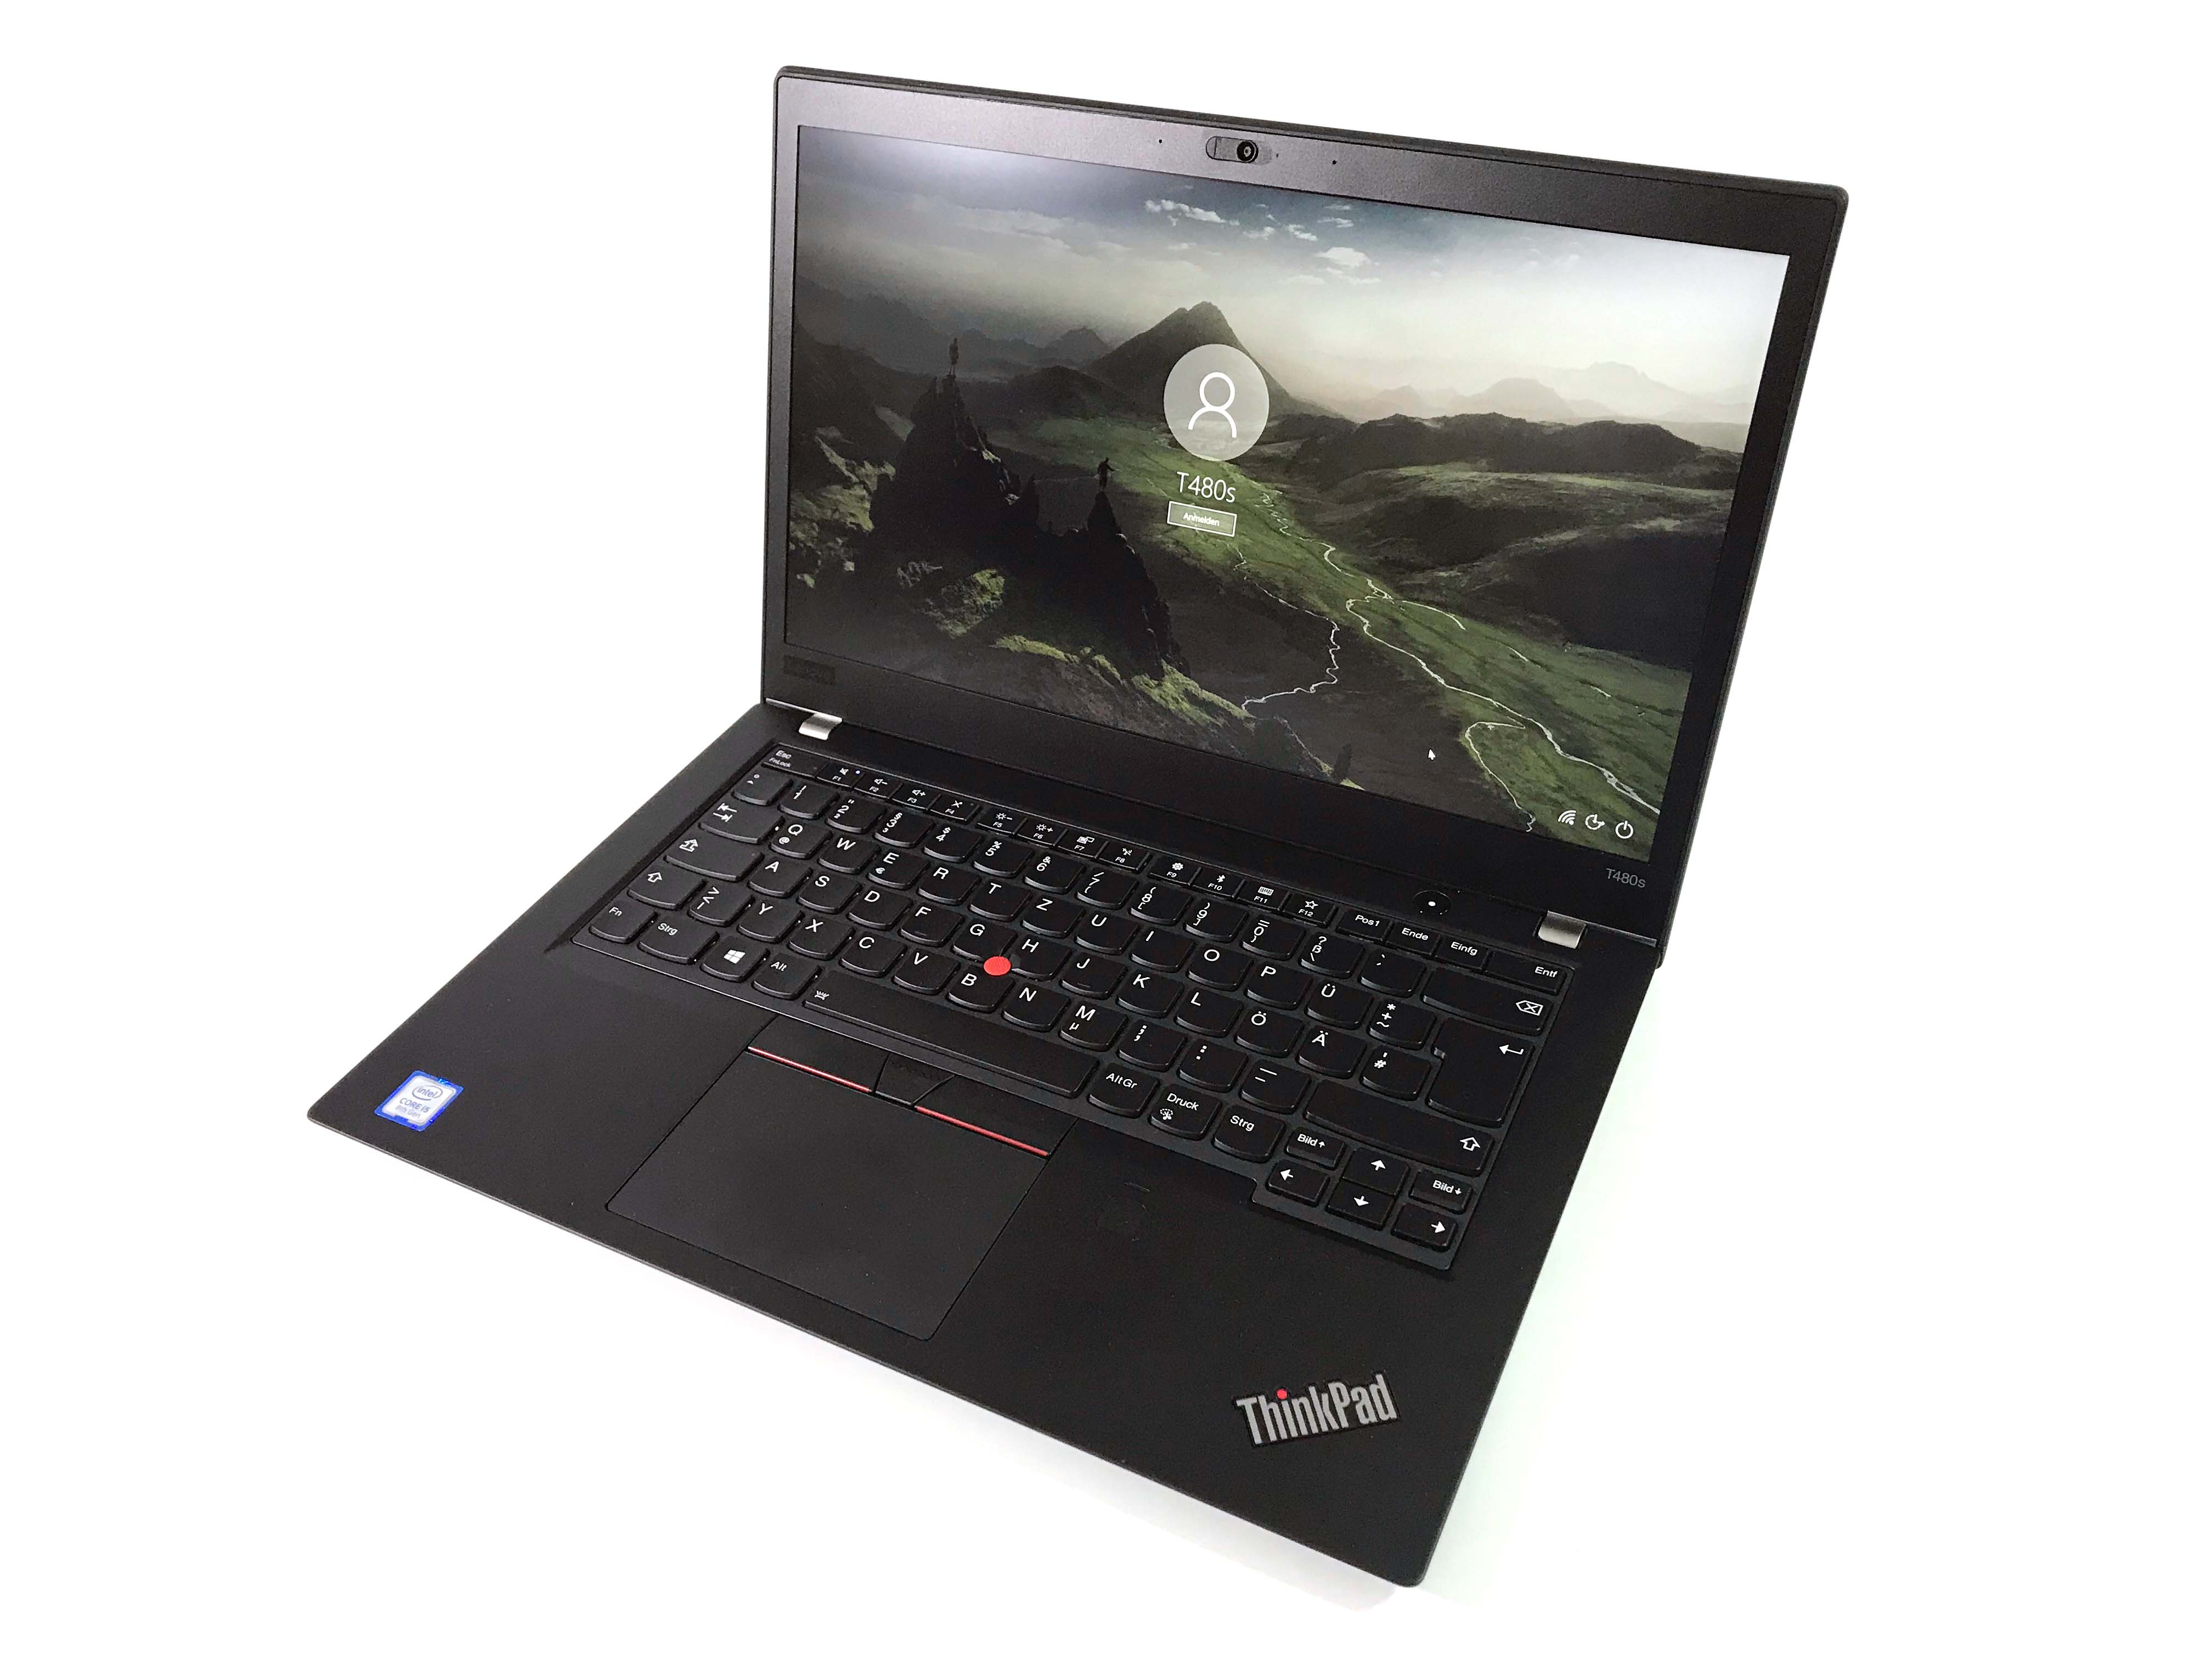 Lenovo ThinkPad T480s (i5, WQHD) Laptop Review